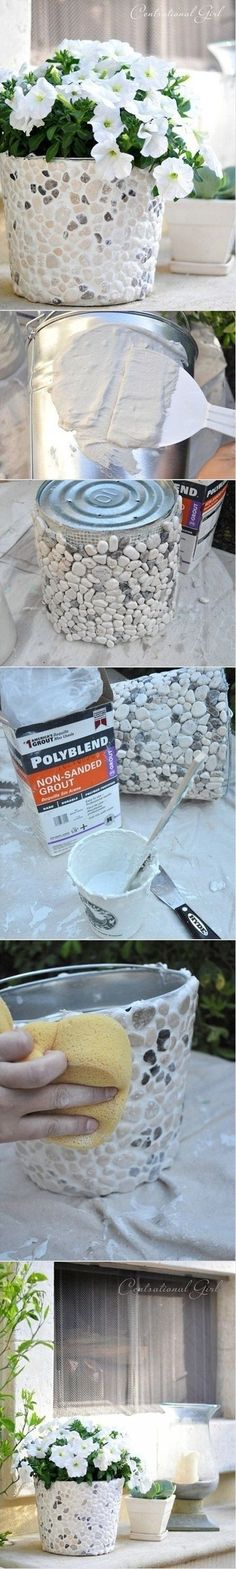 DIY Rock Covered Bucket! Totally adding this to my TO DO list!!! I can't wait!